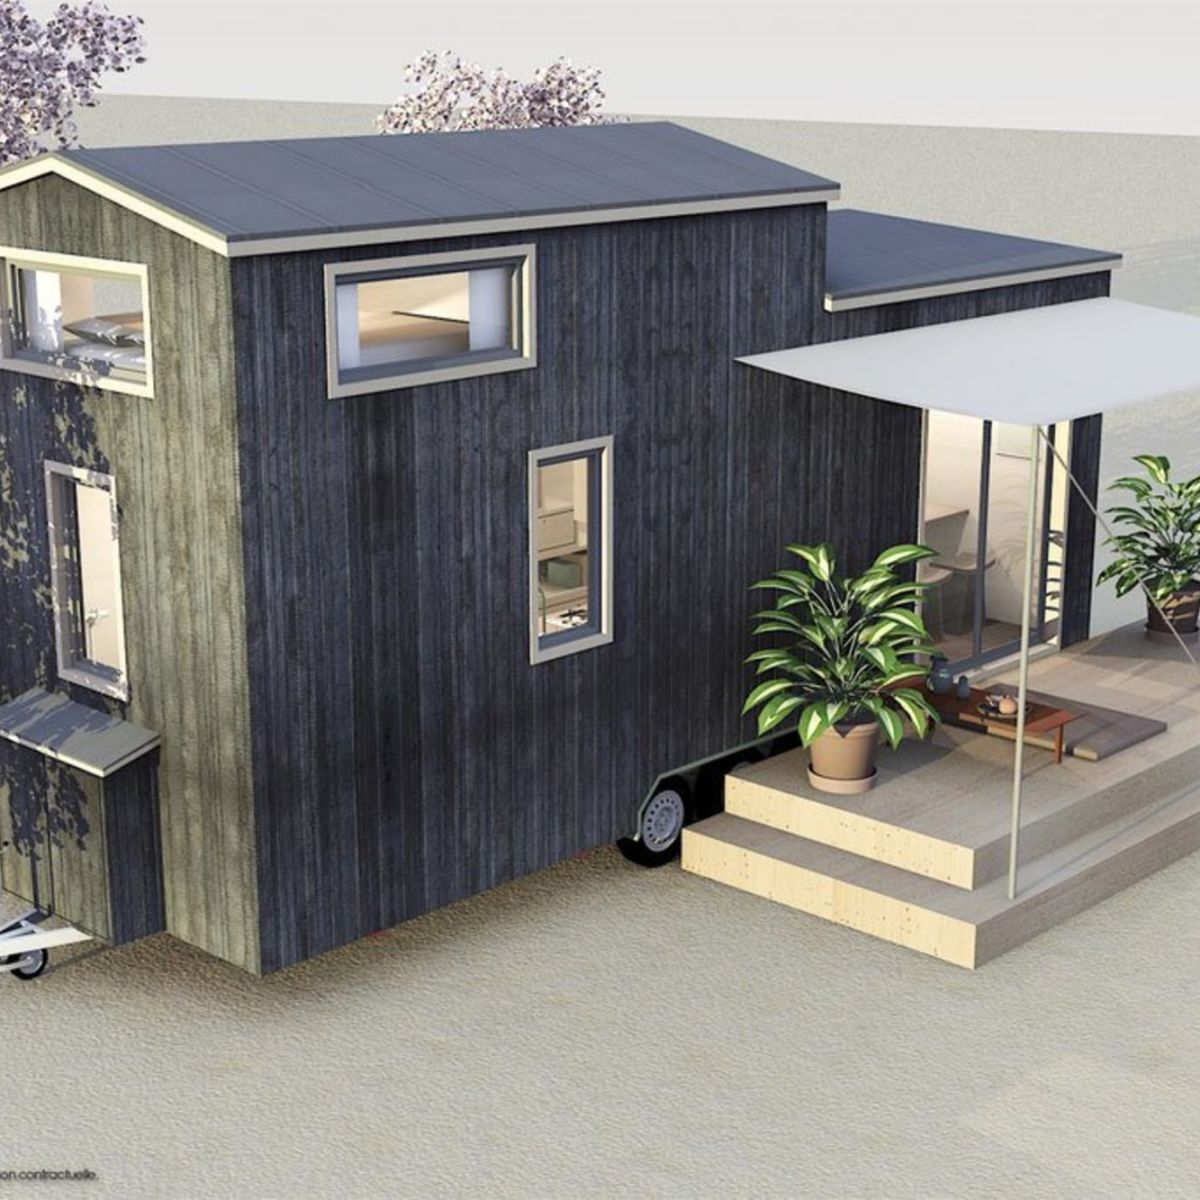 Furniture For Less Miami: High-Performance UltraLight Composite Tiny Homes